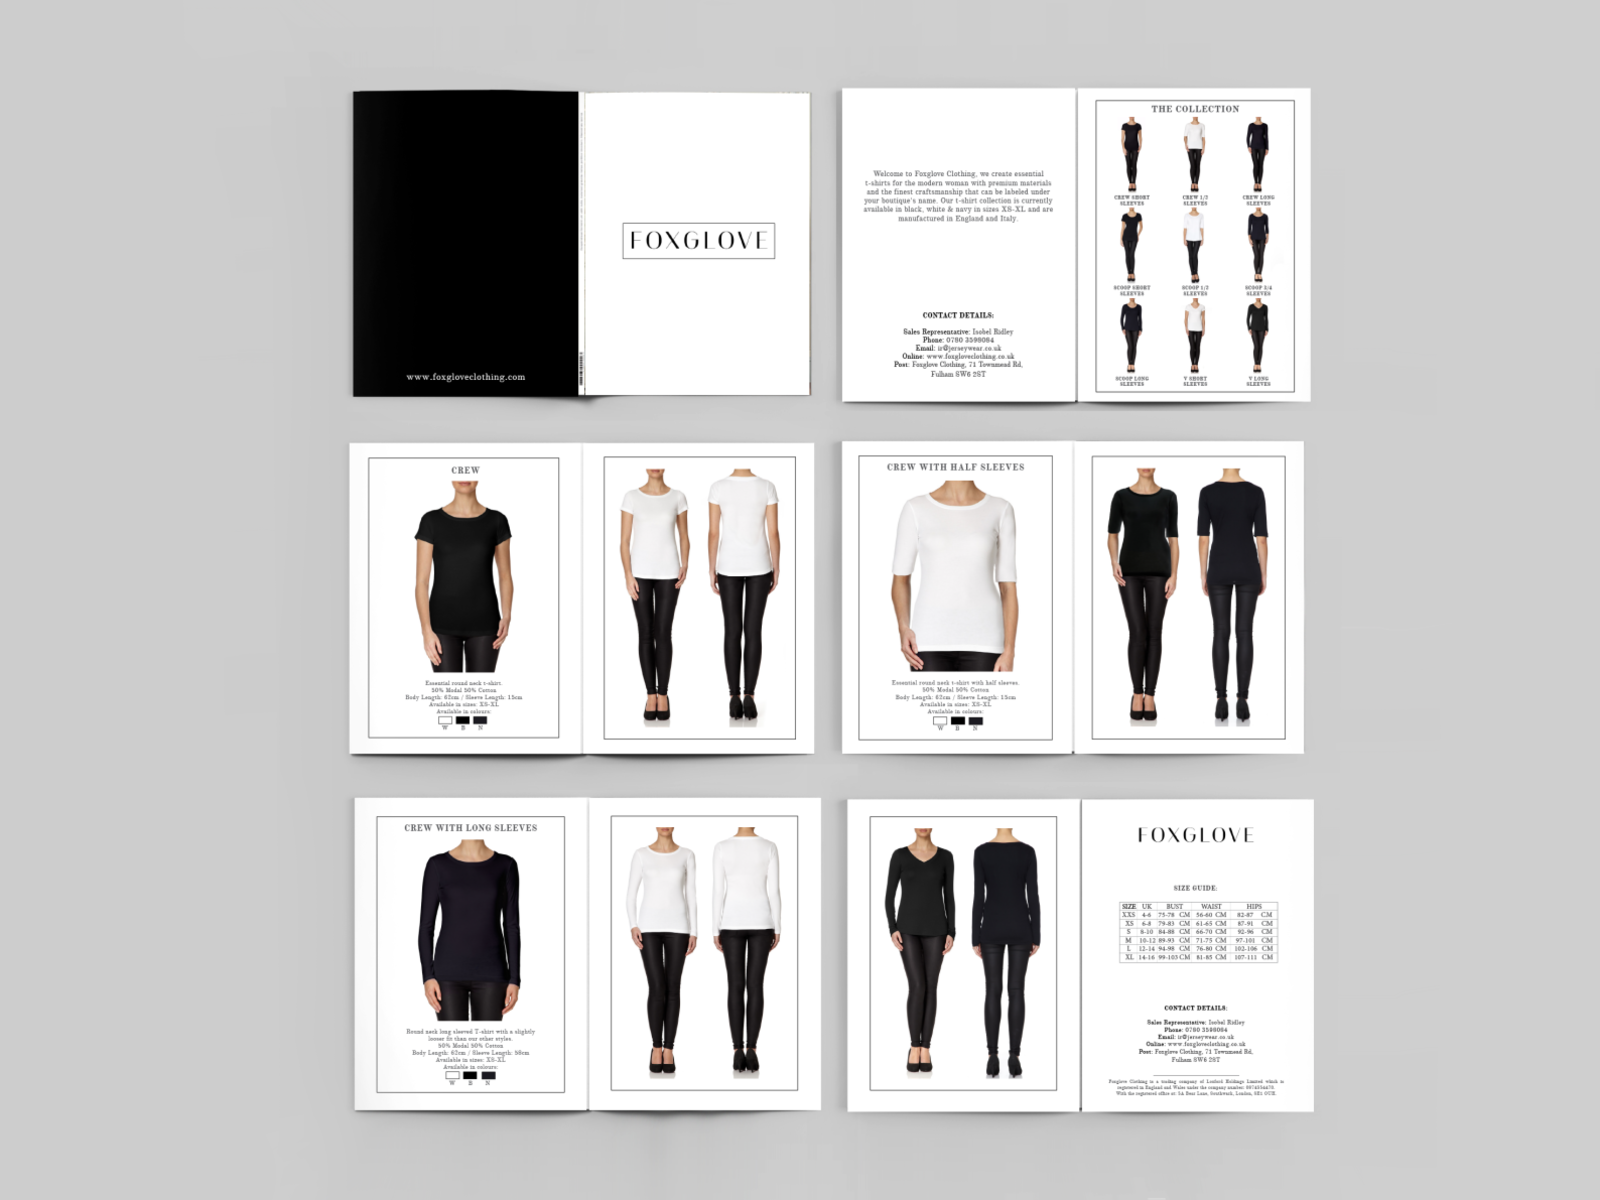 Foxglove Lookbook Design By Lina And Arnold 9 Ideas On Dribbble